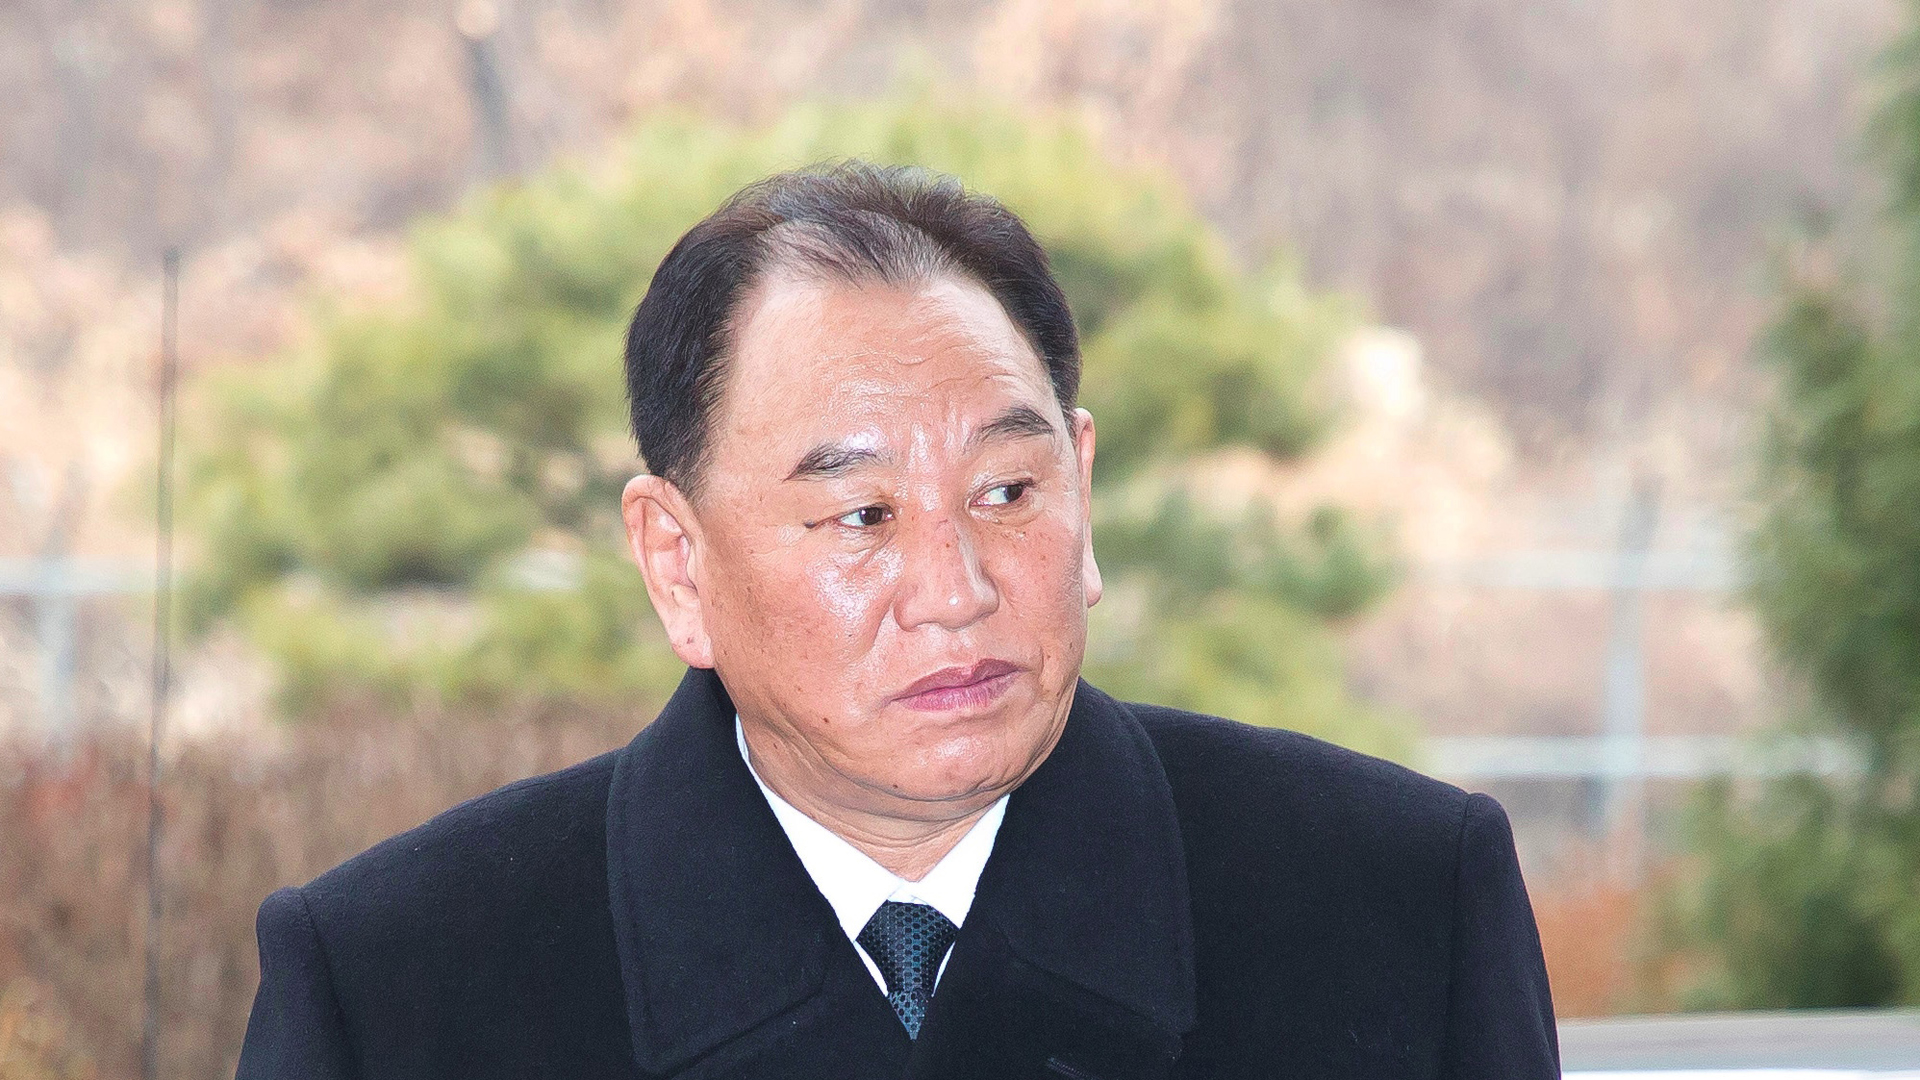 General Kim Yong Chol, who is in charge of inter-Korean affairs for North Korea's ruling Workers' Party, arrives to leave for North Korea from the inter-Korea transit office in Paju near the Demilitarized zone dividing the two Koreas on February 27, 2018. (Credit: Korea Pool/AFP/Getty Images)